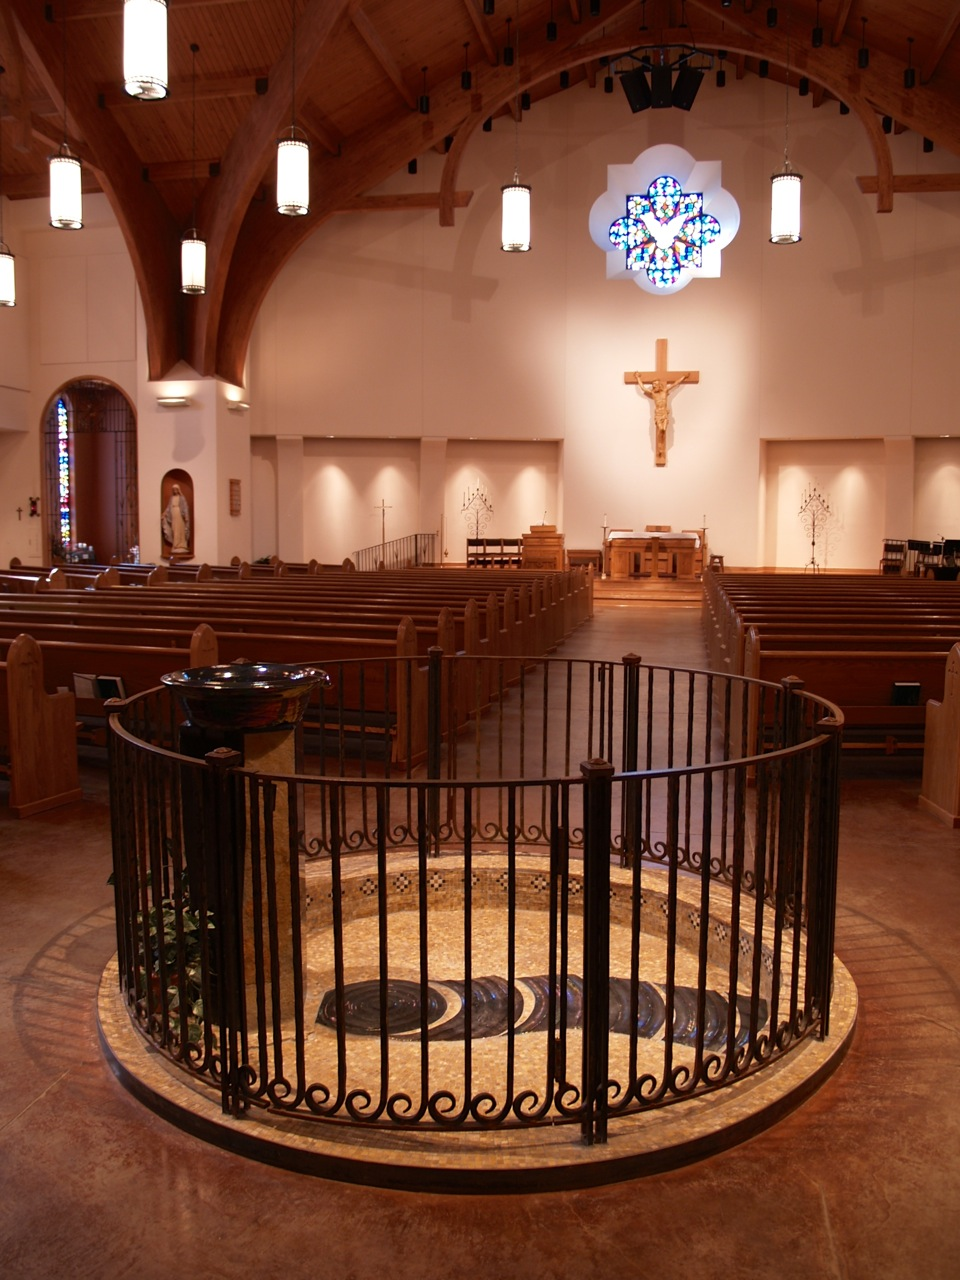 St._Elizabeth_Catholic_University_Parish_Baptismal_Font.jpg